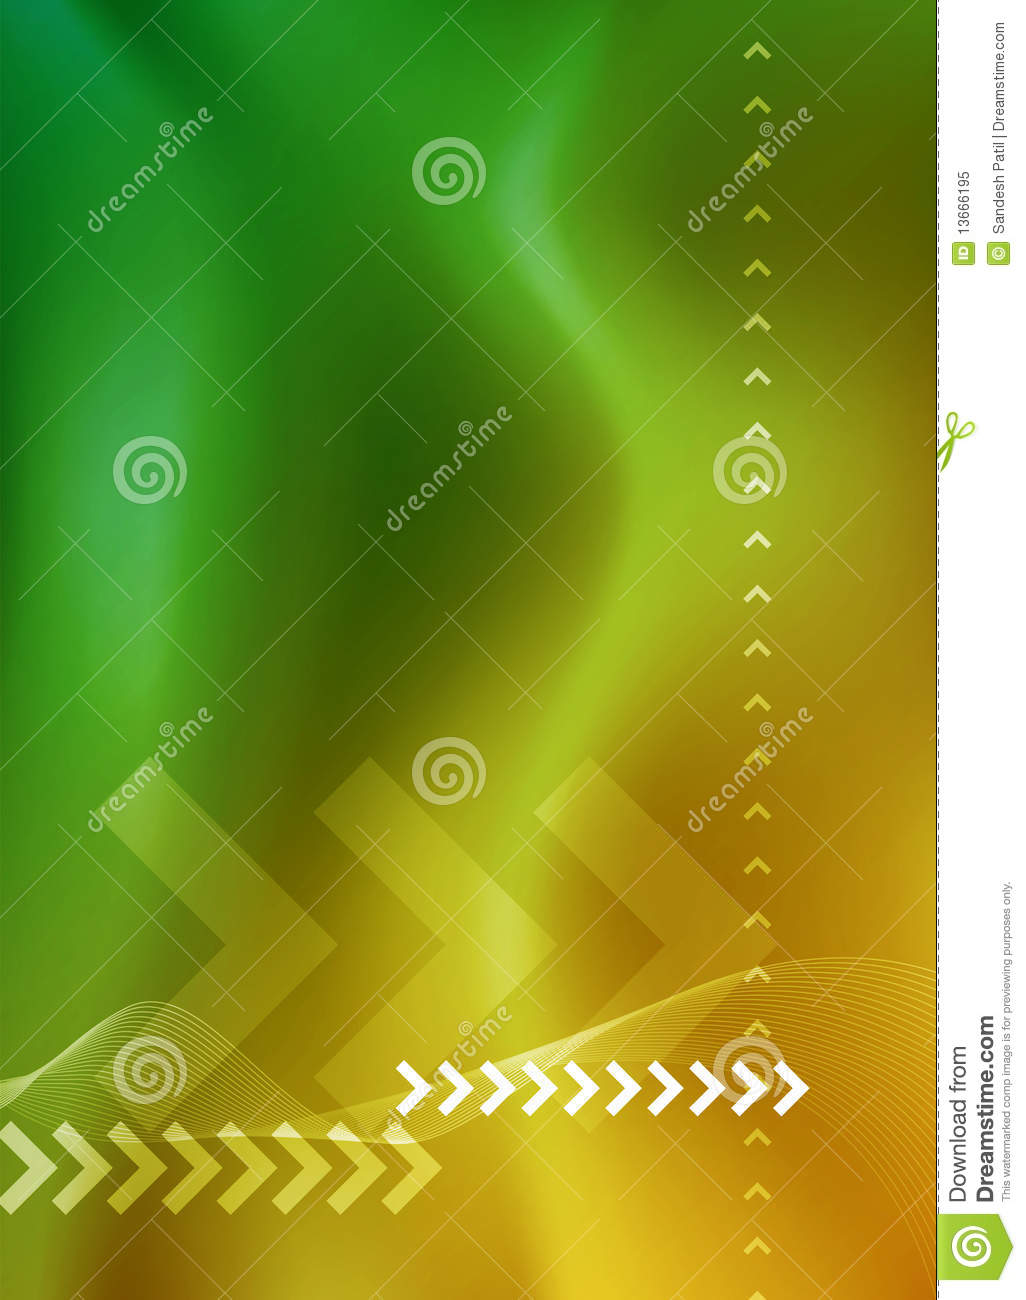 Abstract Background layout